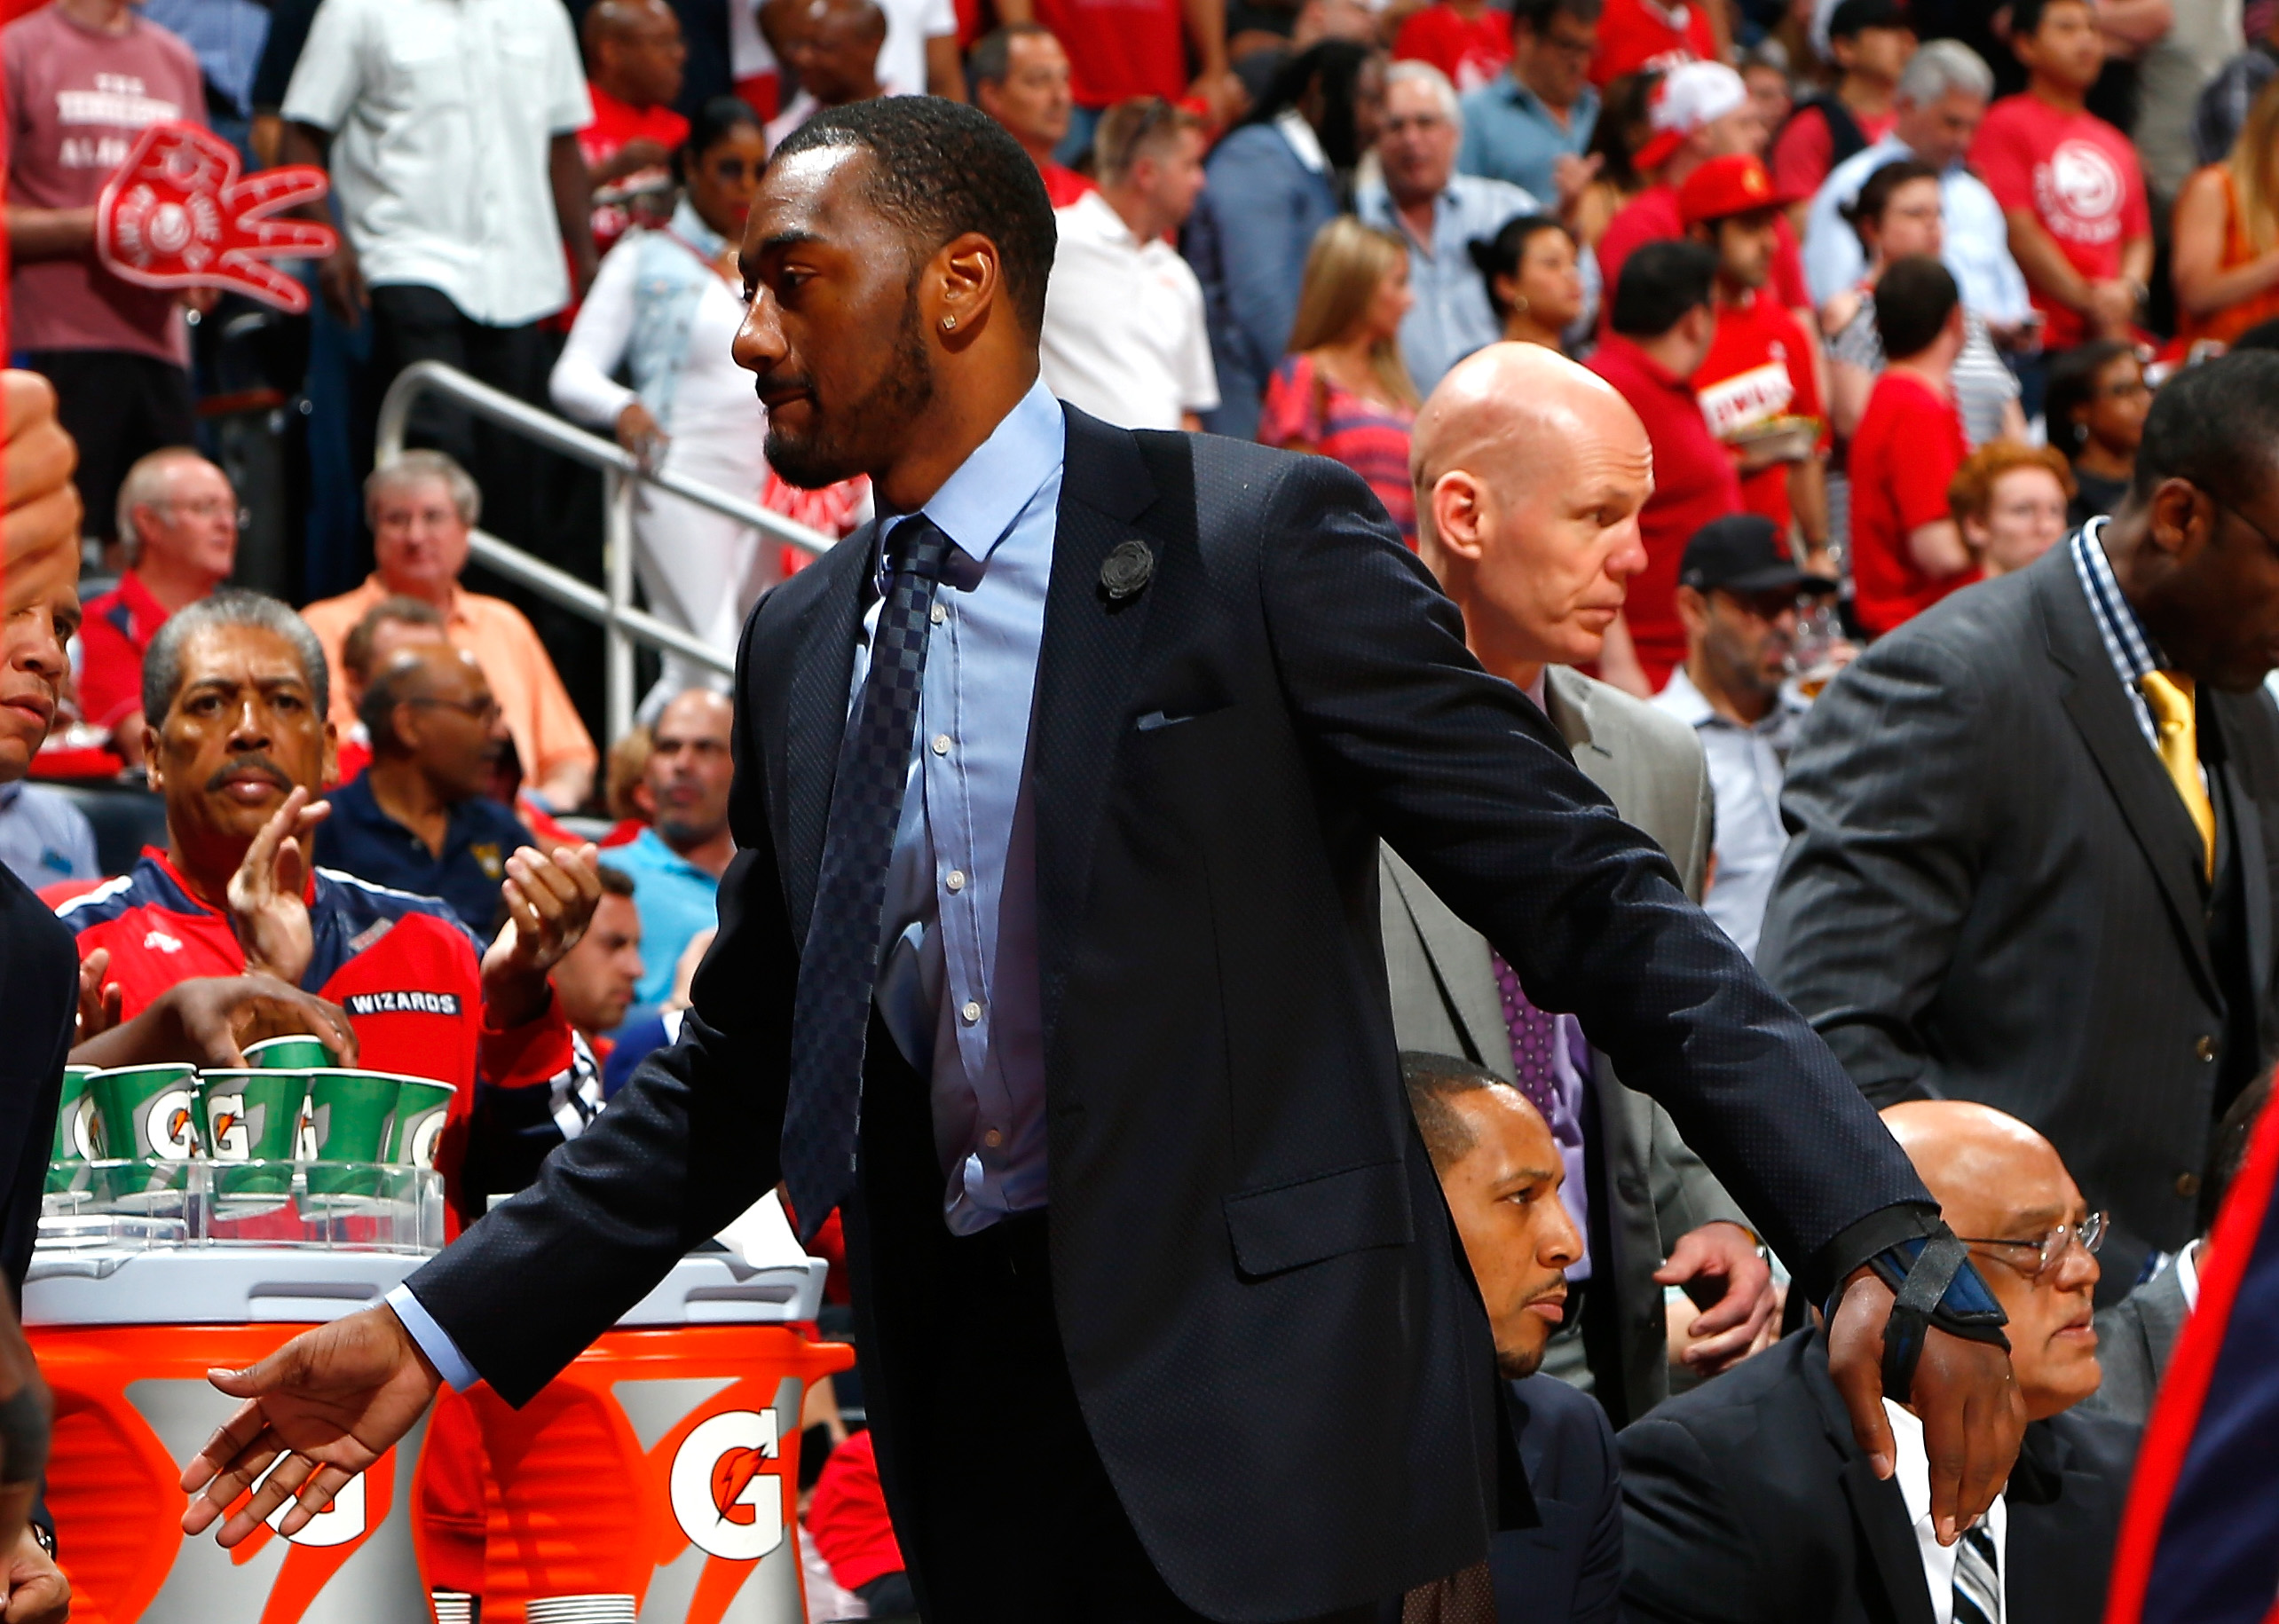 ATLANTA, GA - MAY 05:  John Wall #2 of the Washington Wizards walks the bench prior to Game Two of the Eastern Conference Semifinals of the 2015 NBA Playoffs against the Atlanta Hawks at Philips Arena on May 5, 2015 in Atlanta, Georgia.  (Photo by Kevin C